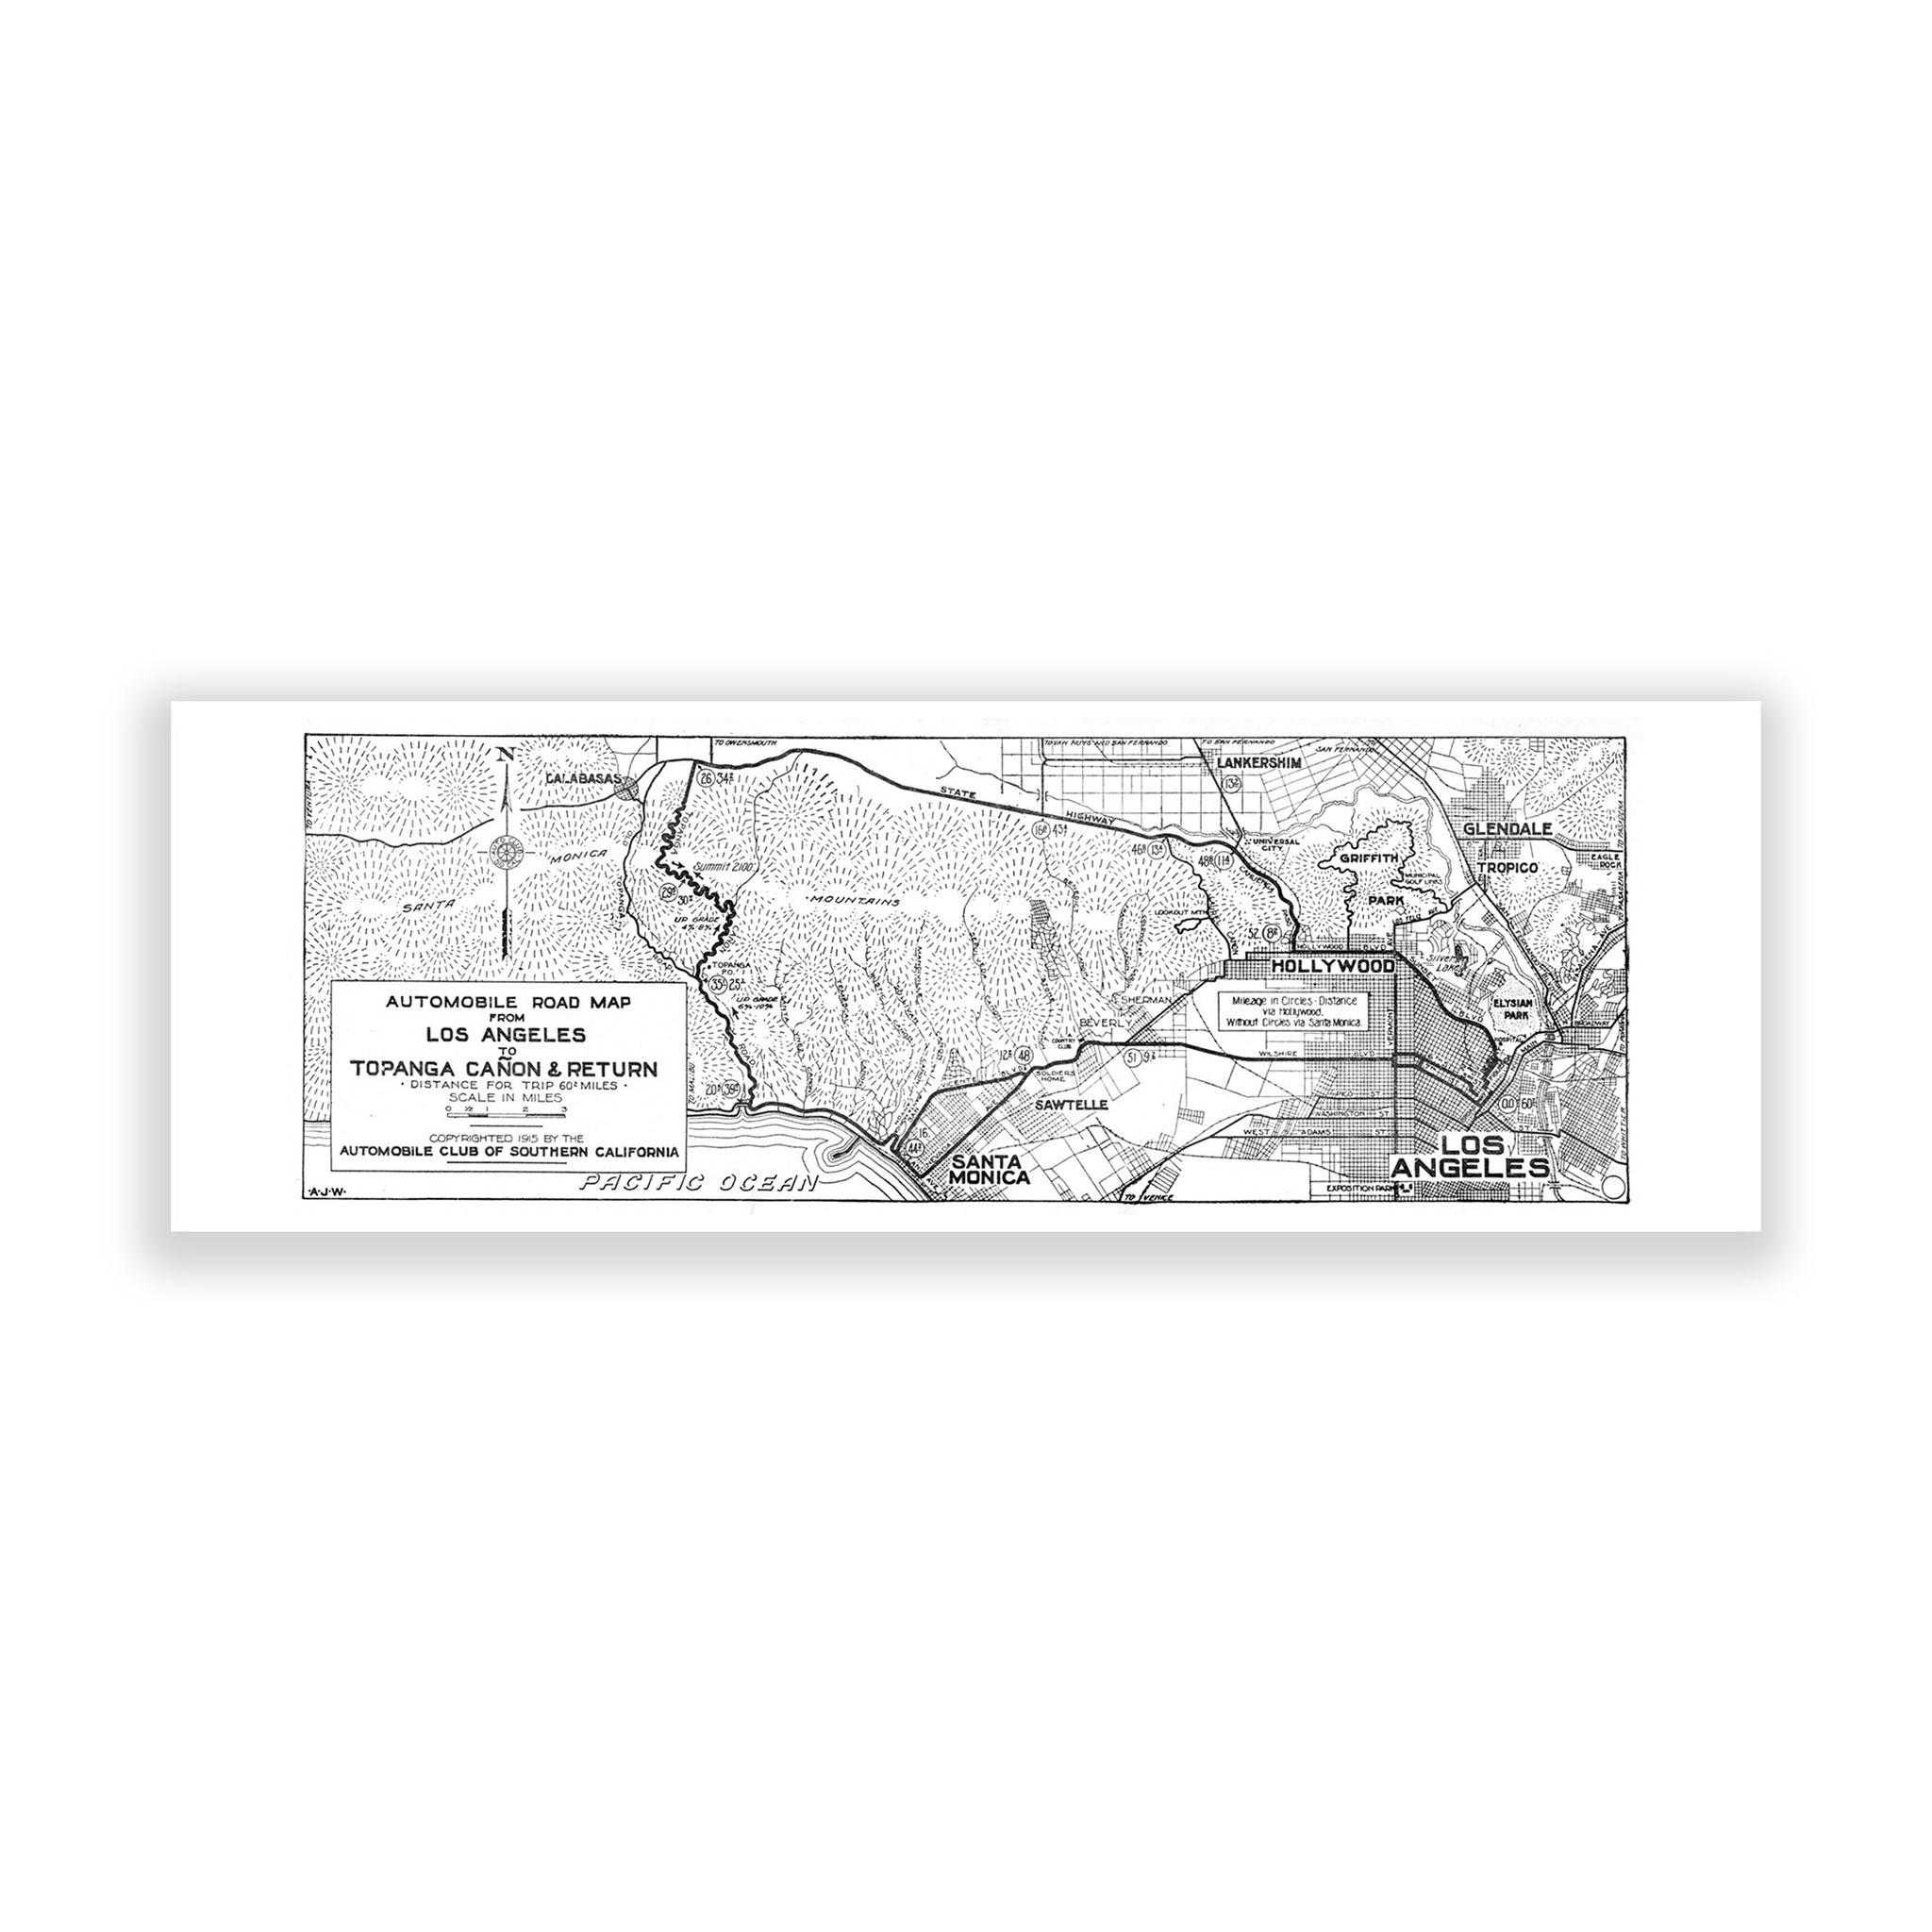 Map of Los Angeles (Topanga Canyon)